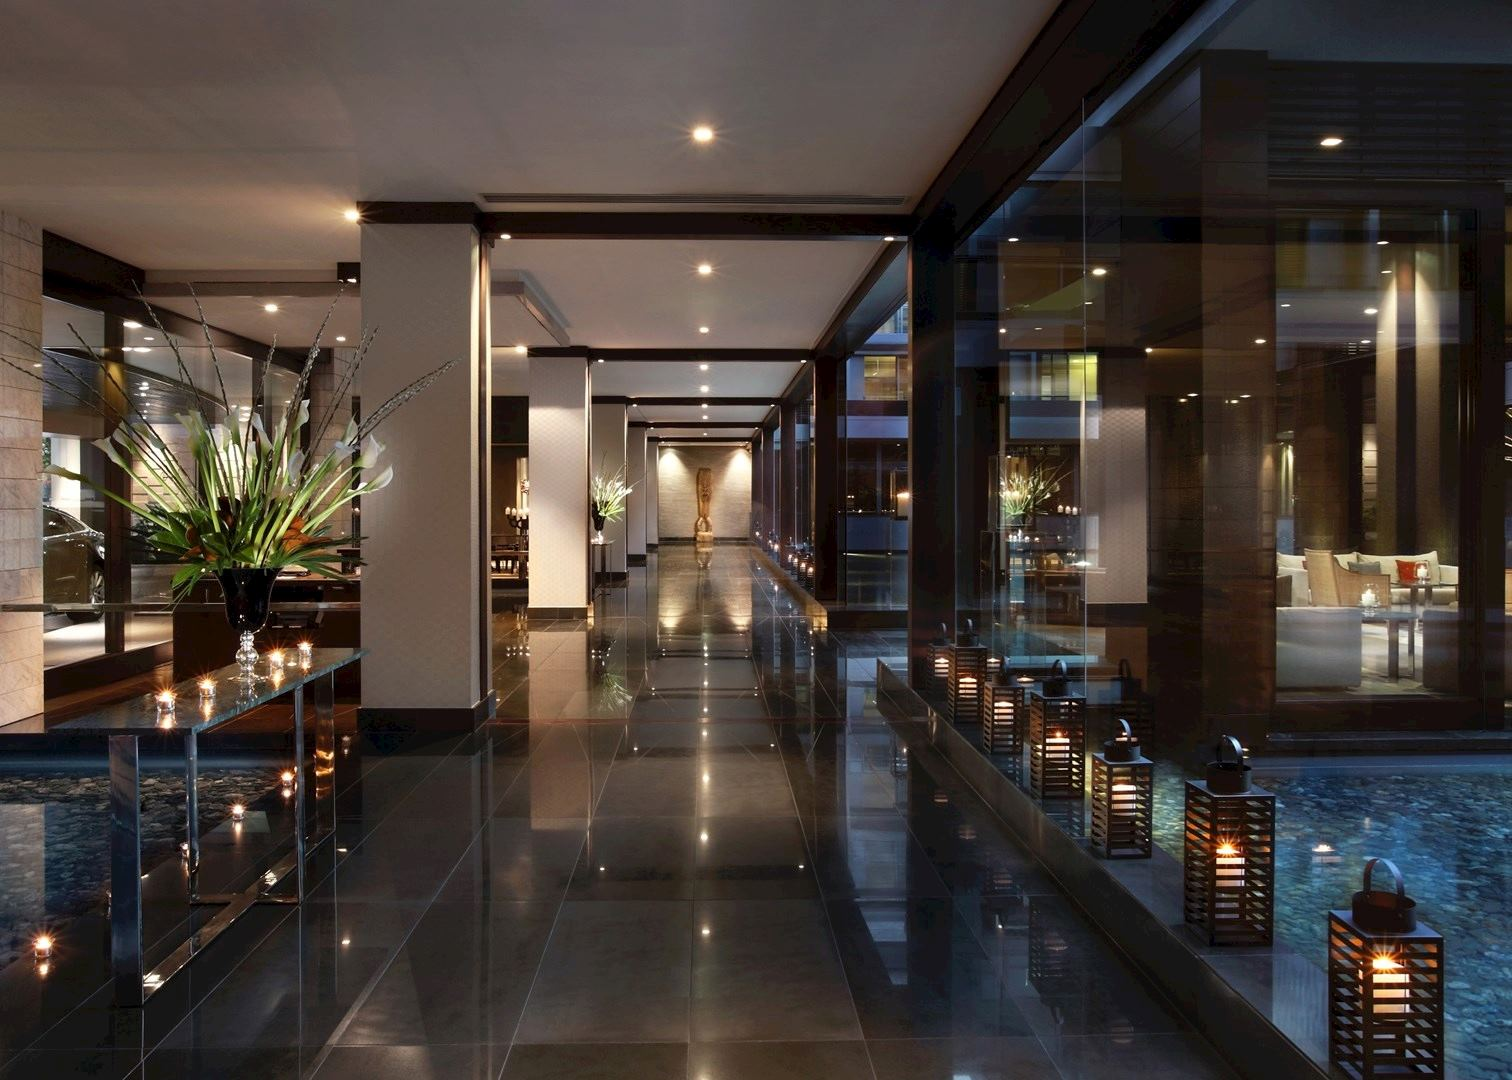 Sofitel auckland viaduct harbour audley travel - Swimming pool maintenance auckland ...